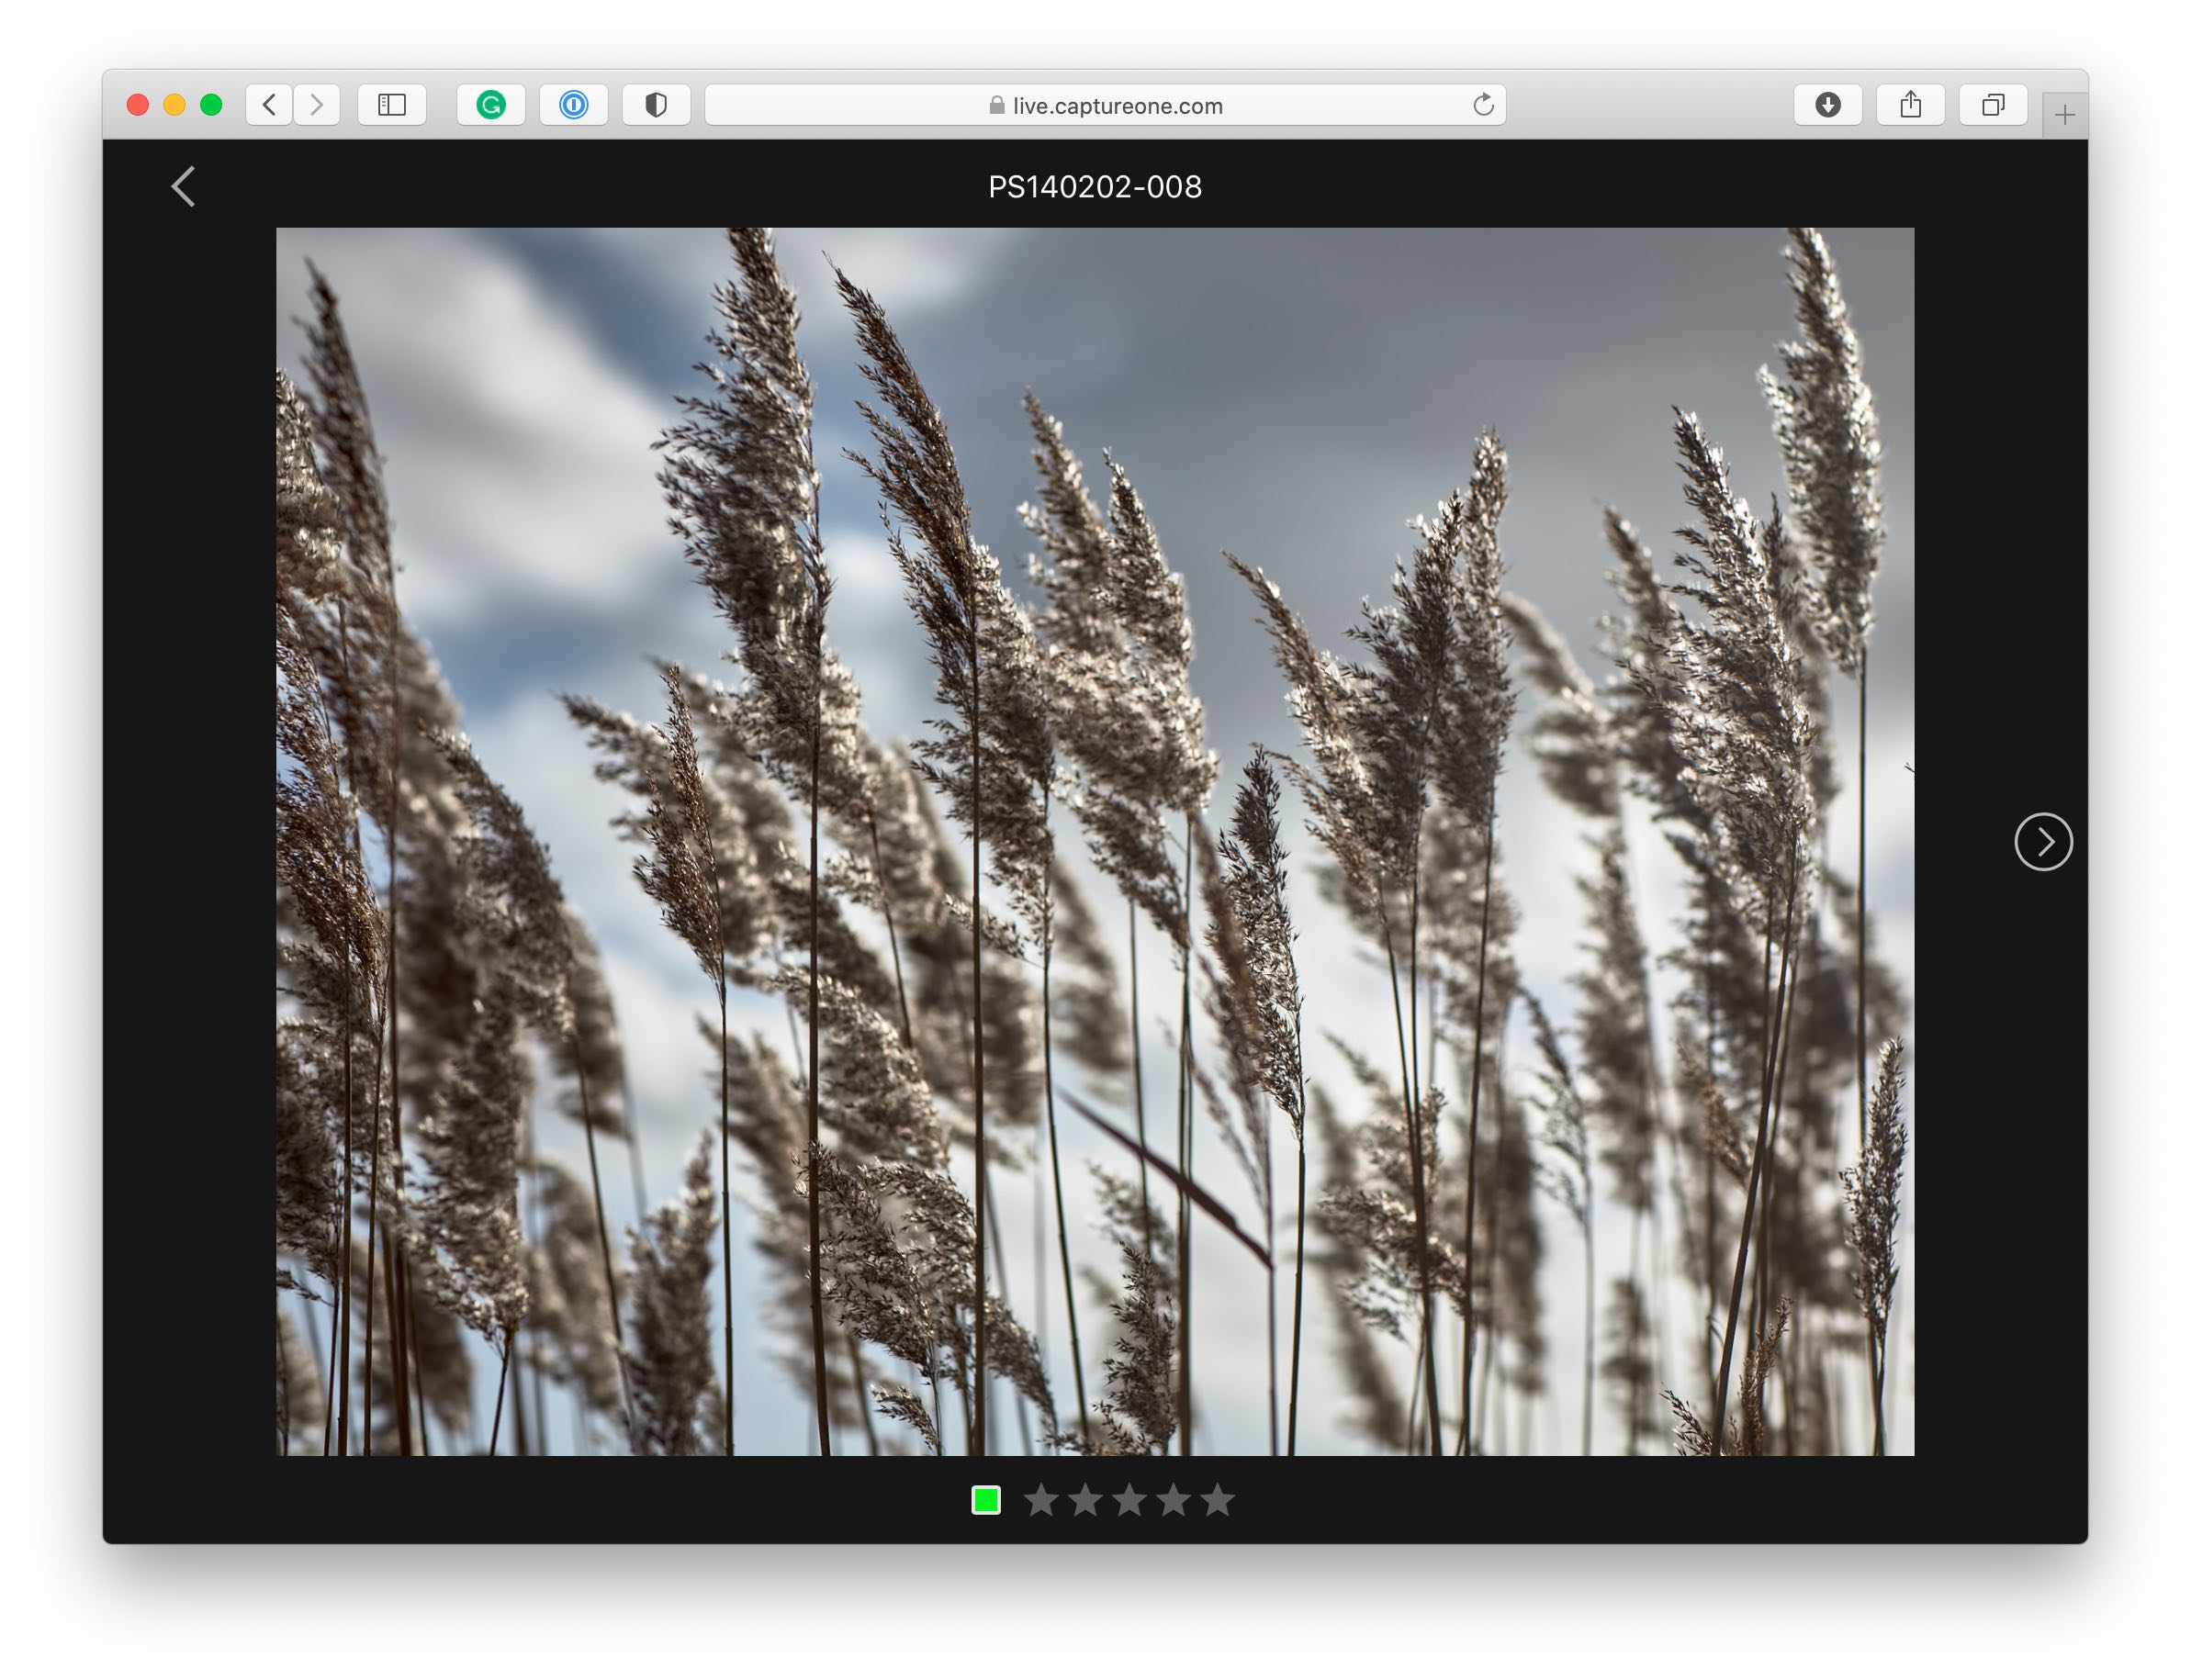 capture one live tool, browser, large view, capture one 21 update 3